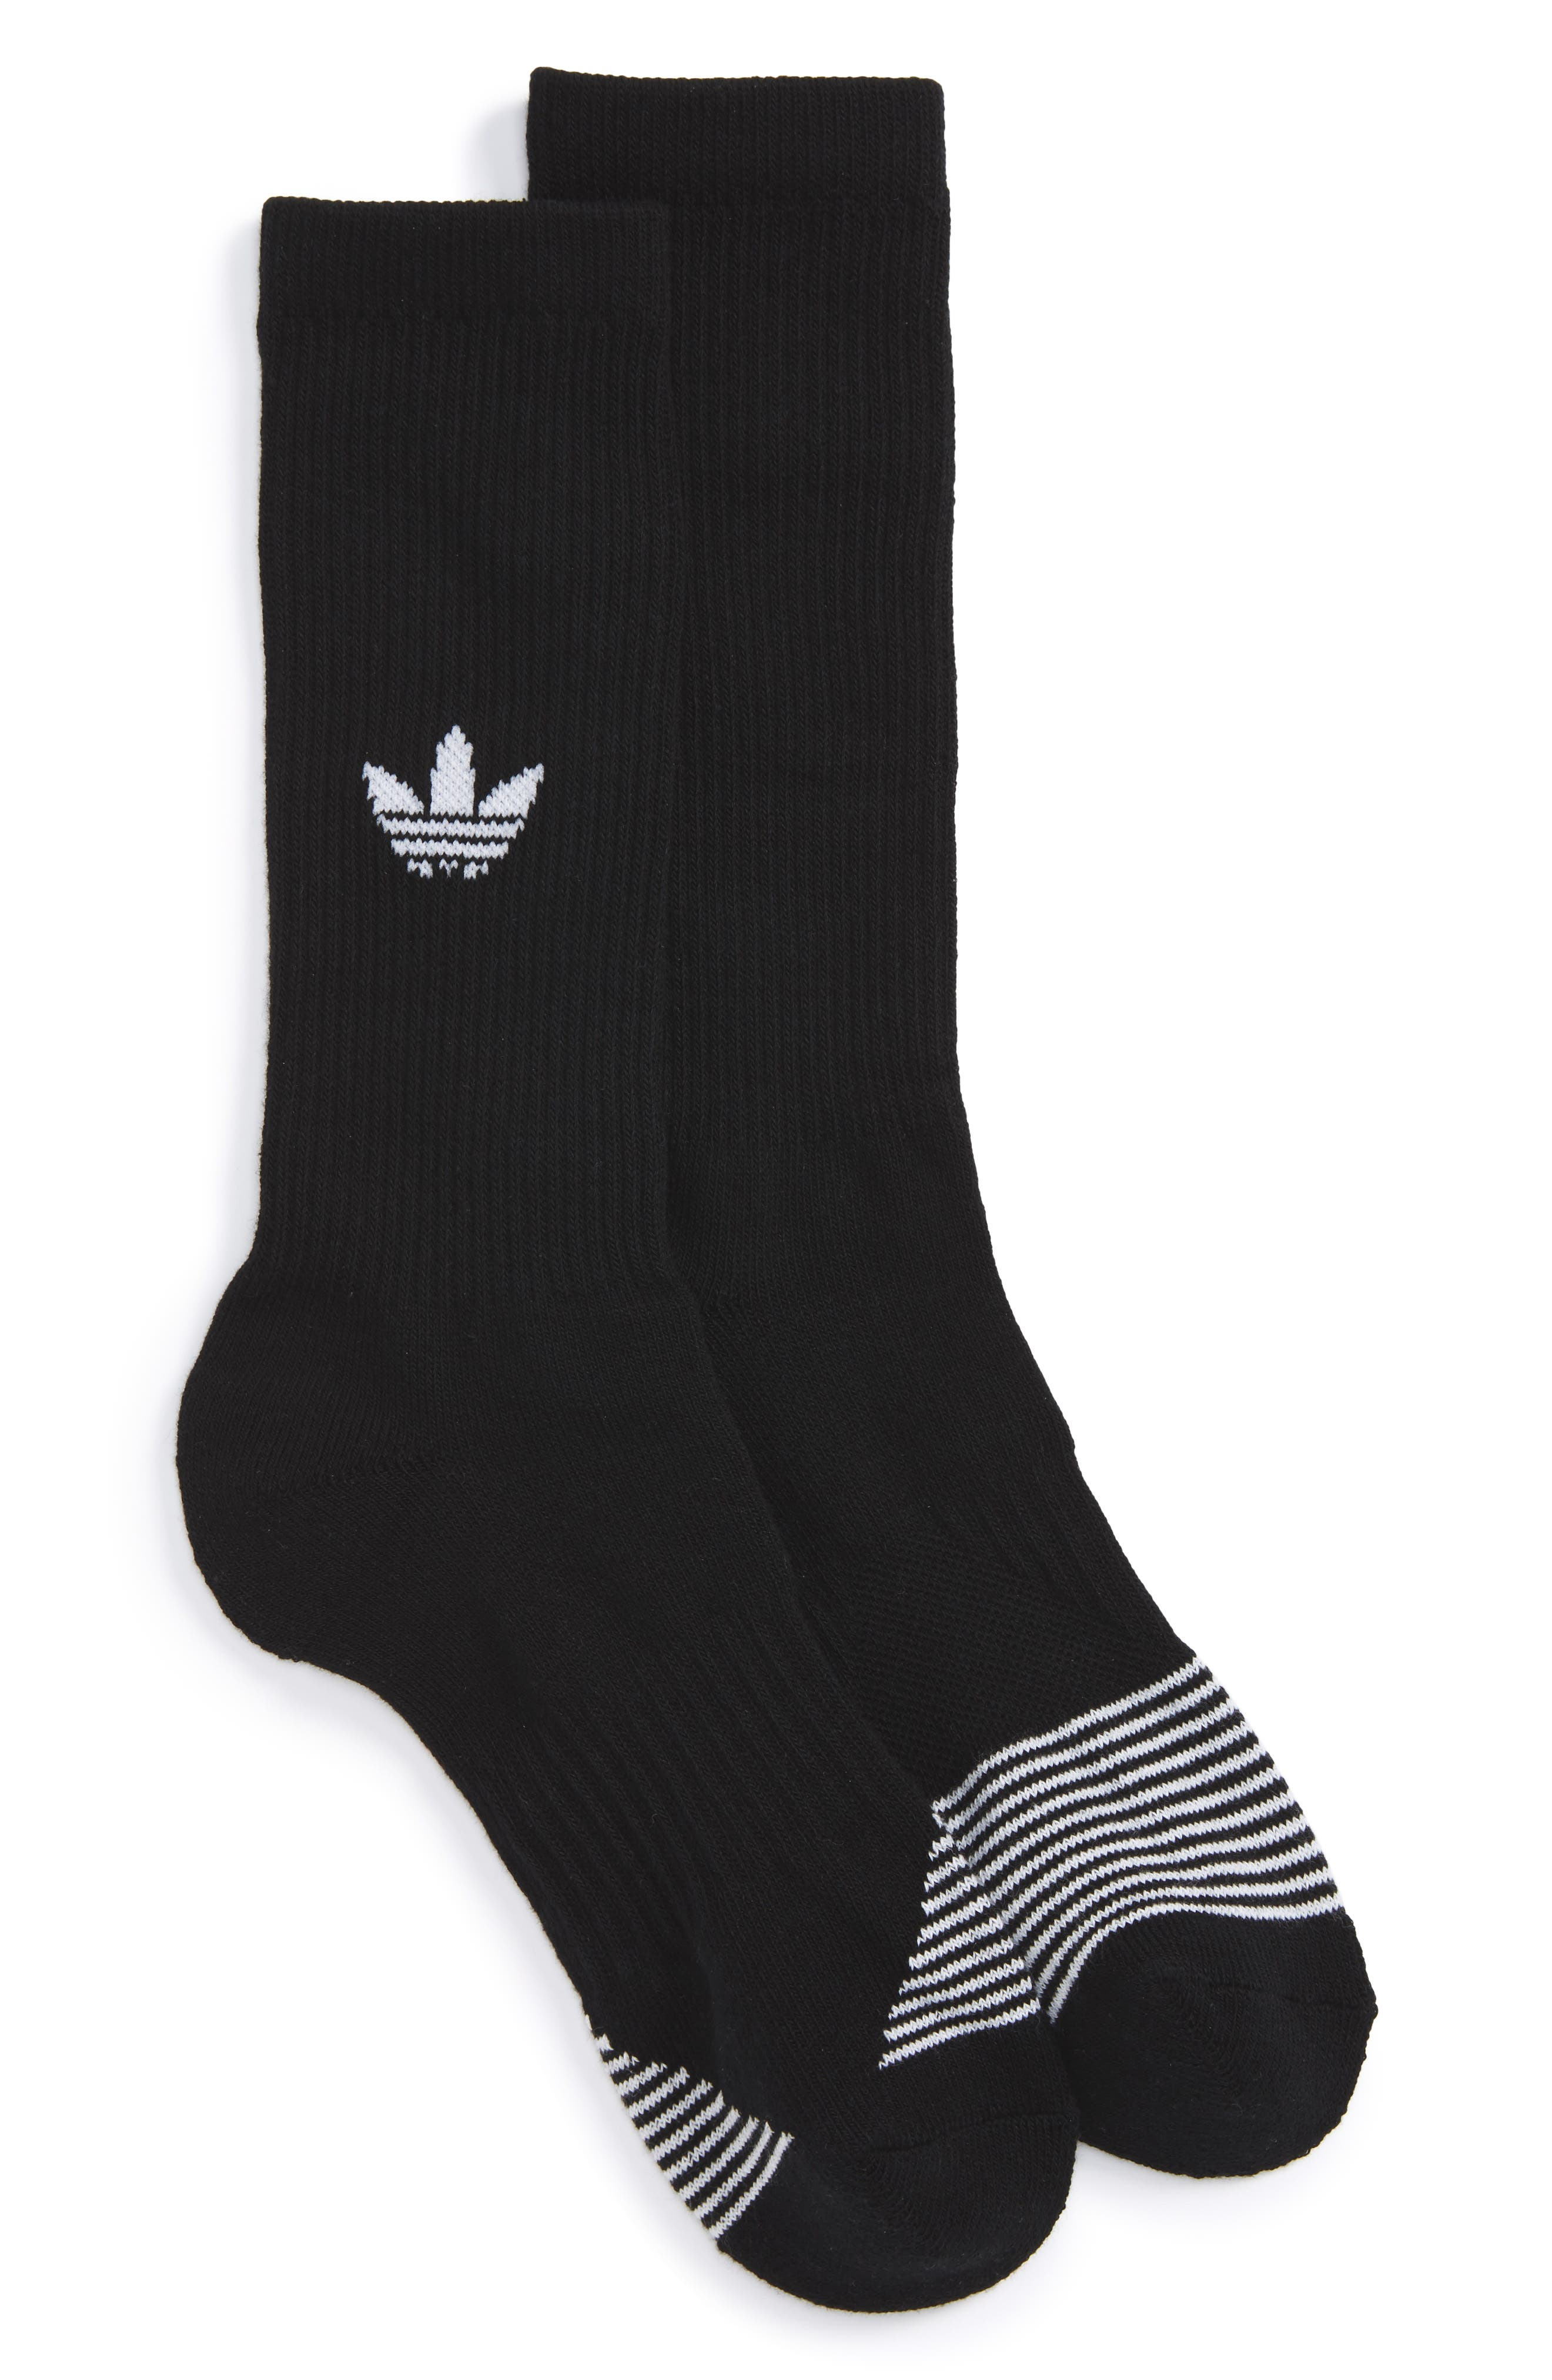 Main Image - adidas Originals Equipment Crew Socks